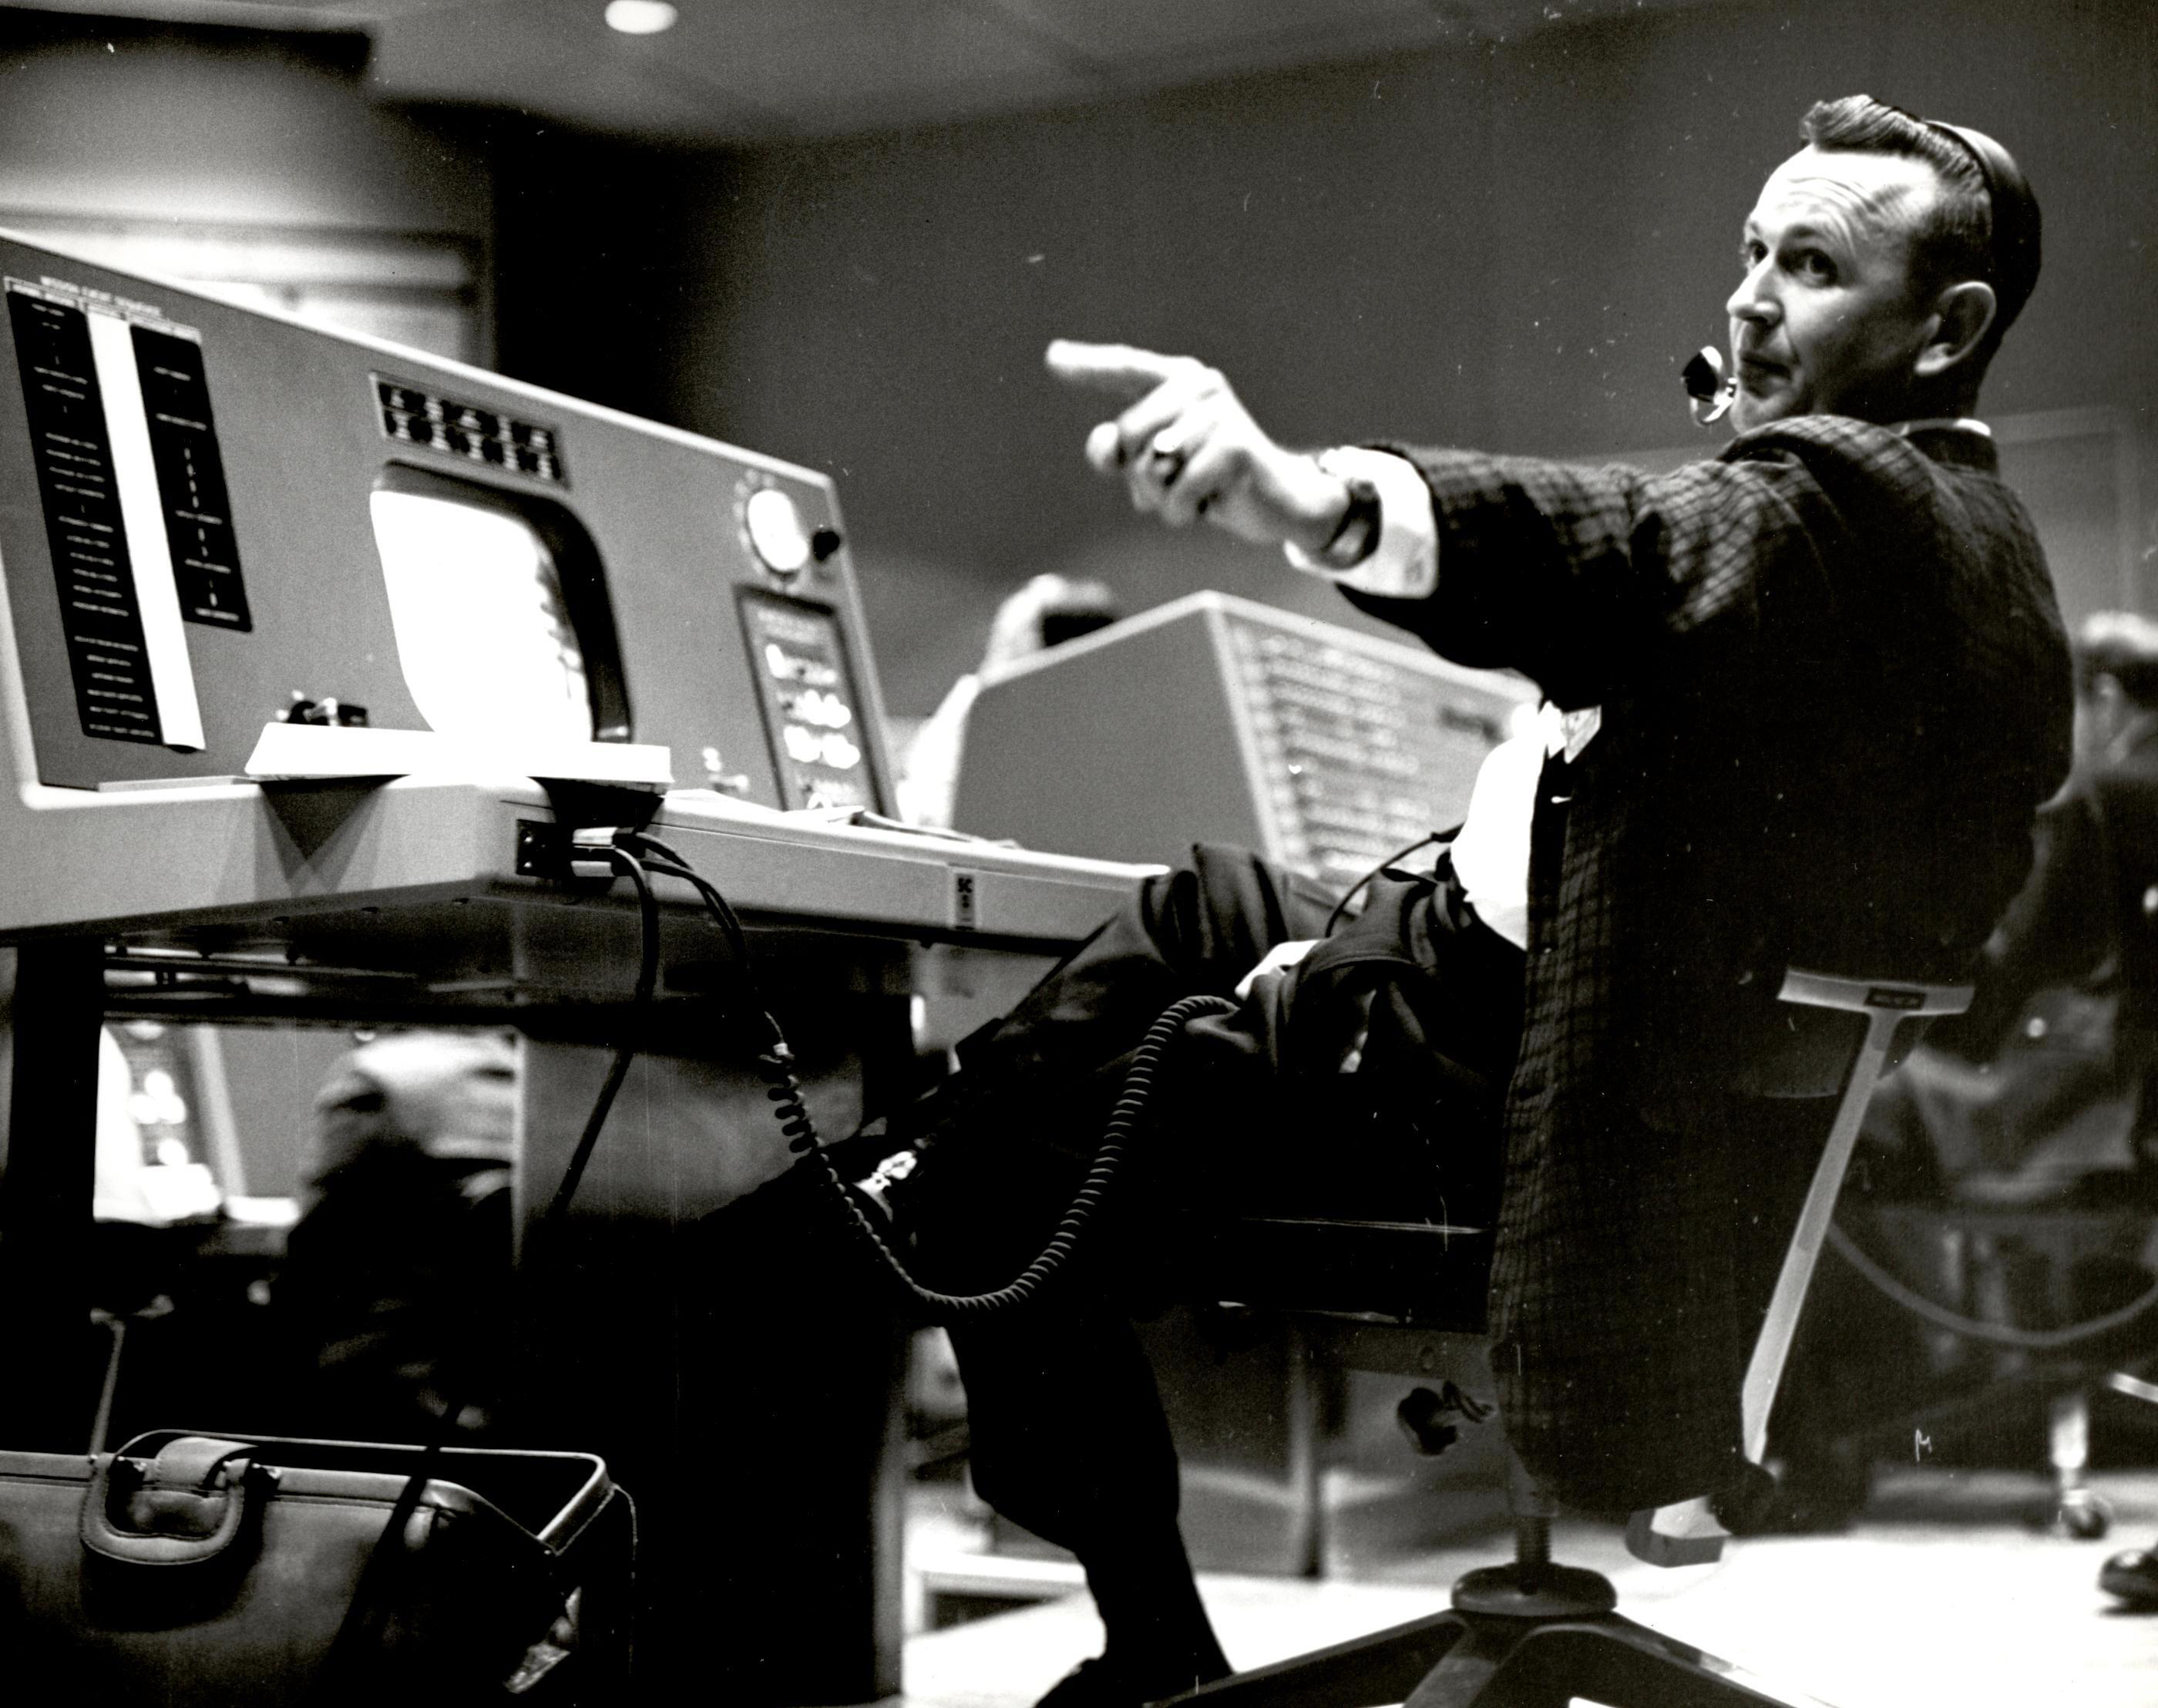 Chris Kraft, 1st flight director for NASA, dead at 95